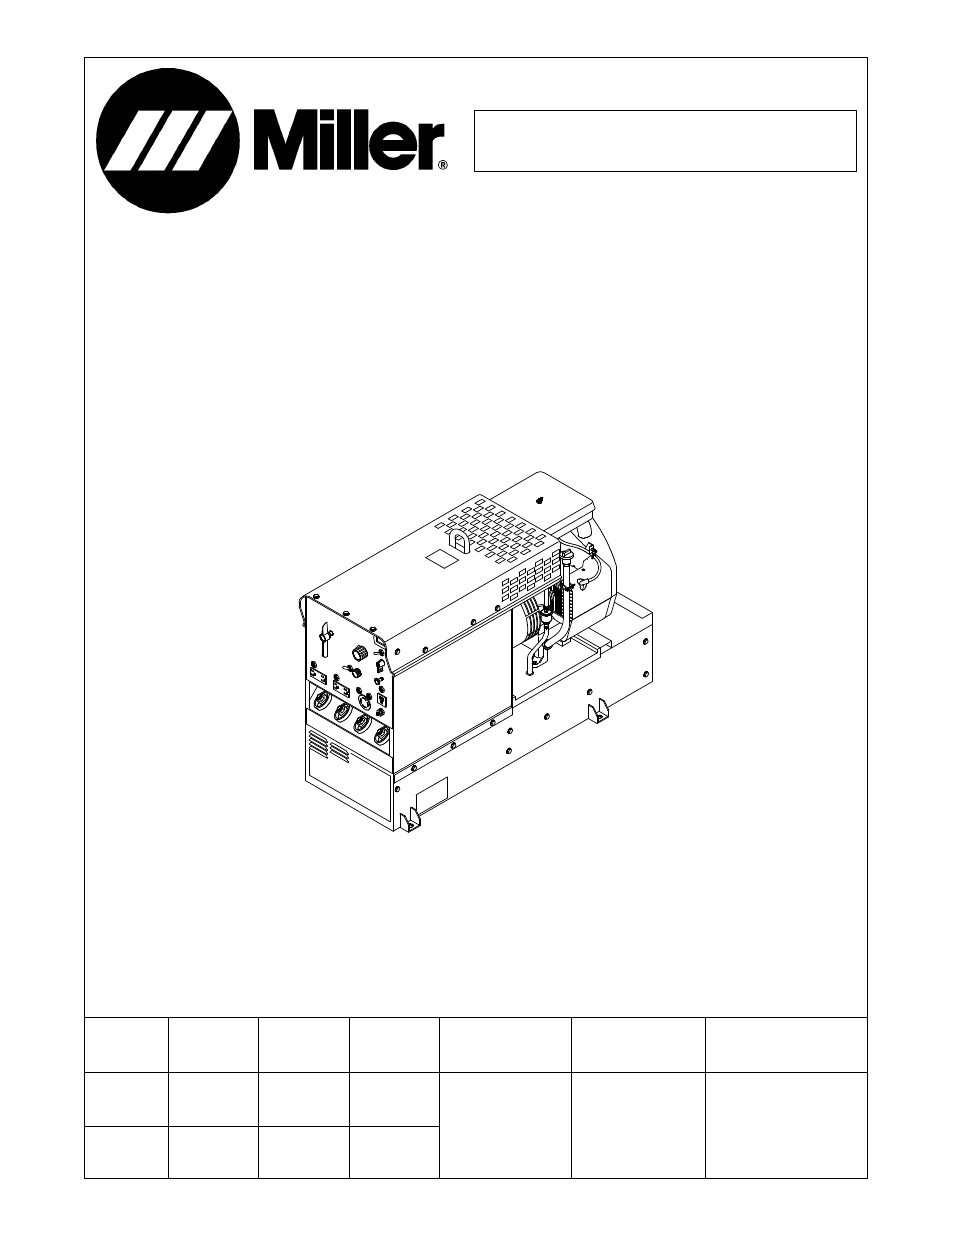 Wiring Diagram For Millermatic - Wiring Diagram Img on